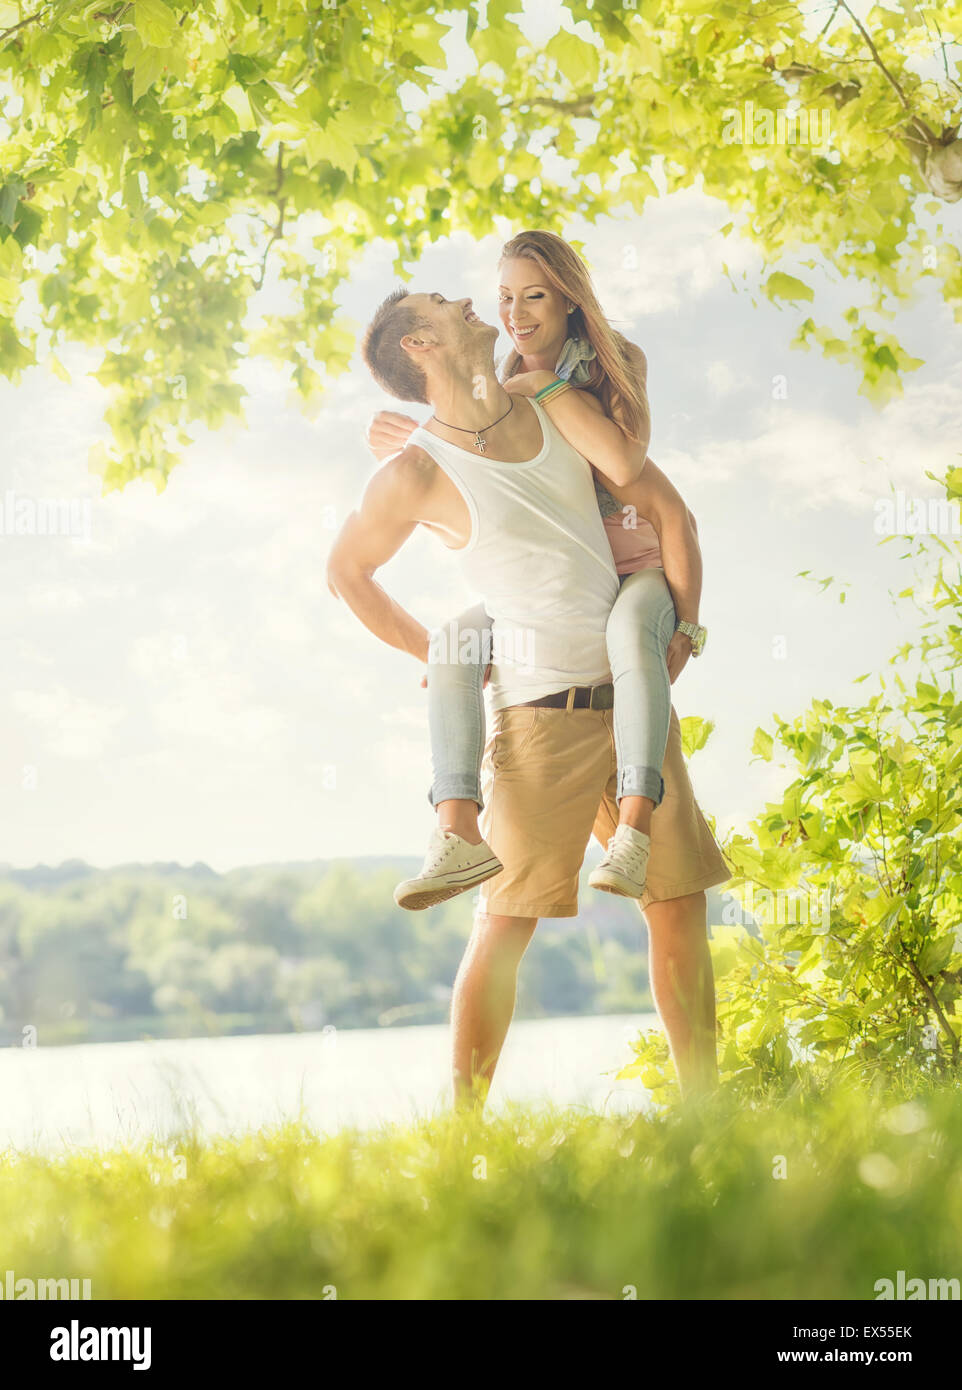 Couple in love sur le lac, hug Photo Stock